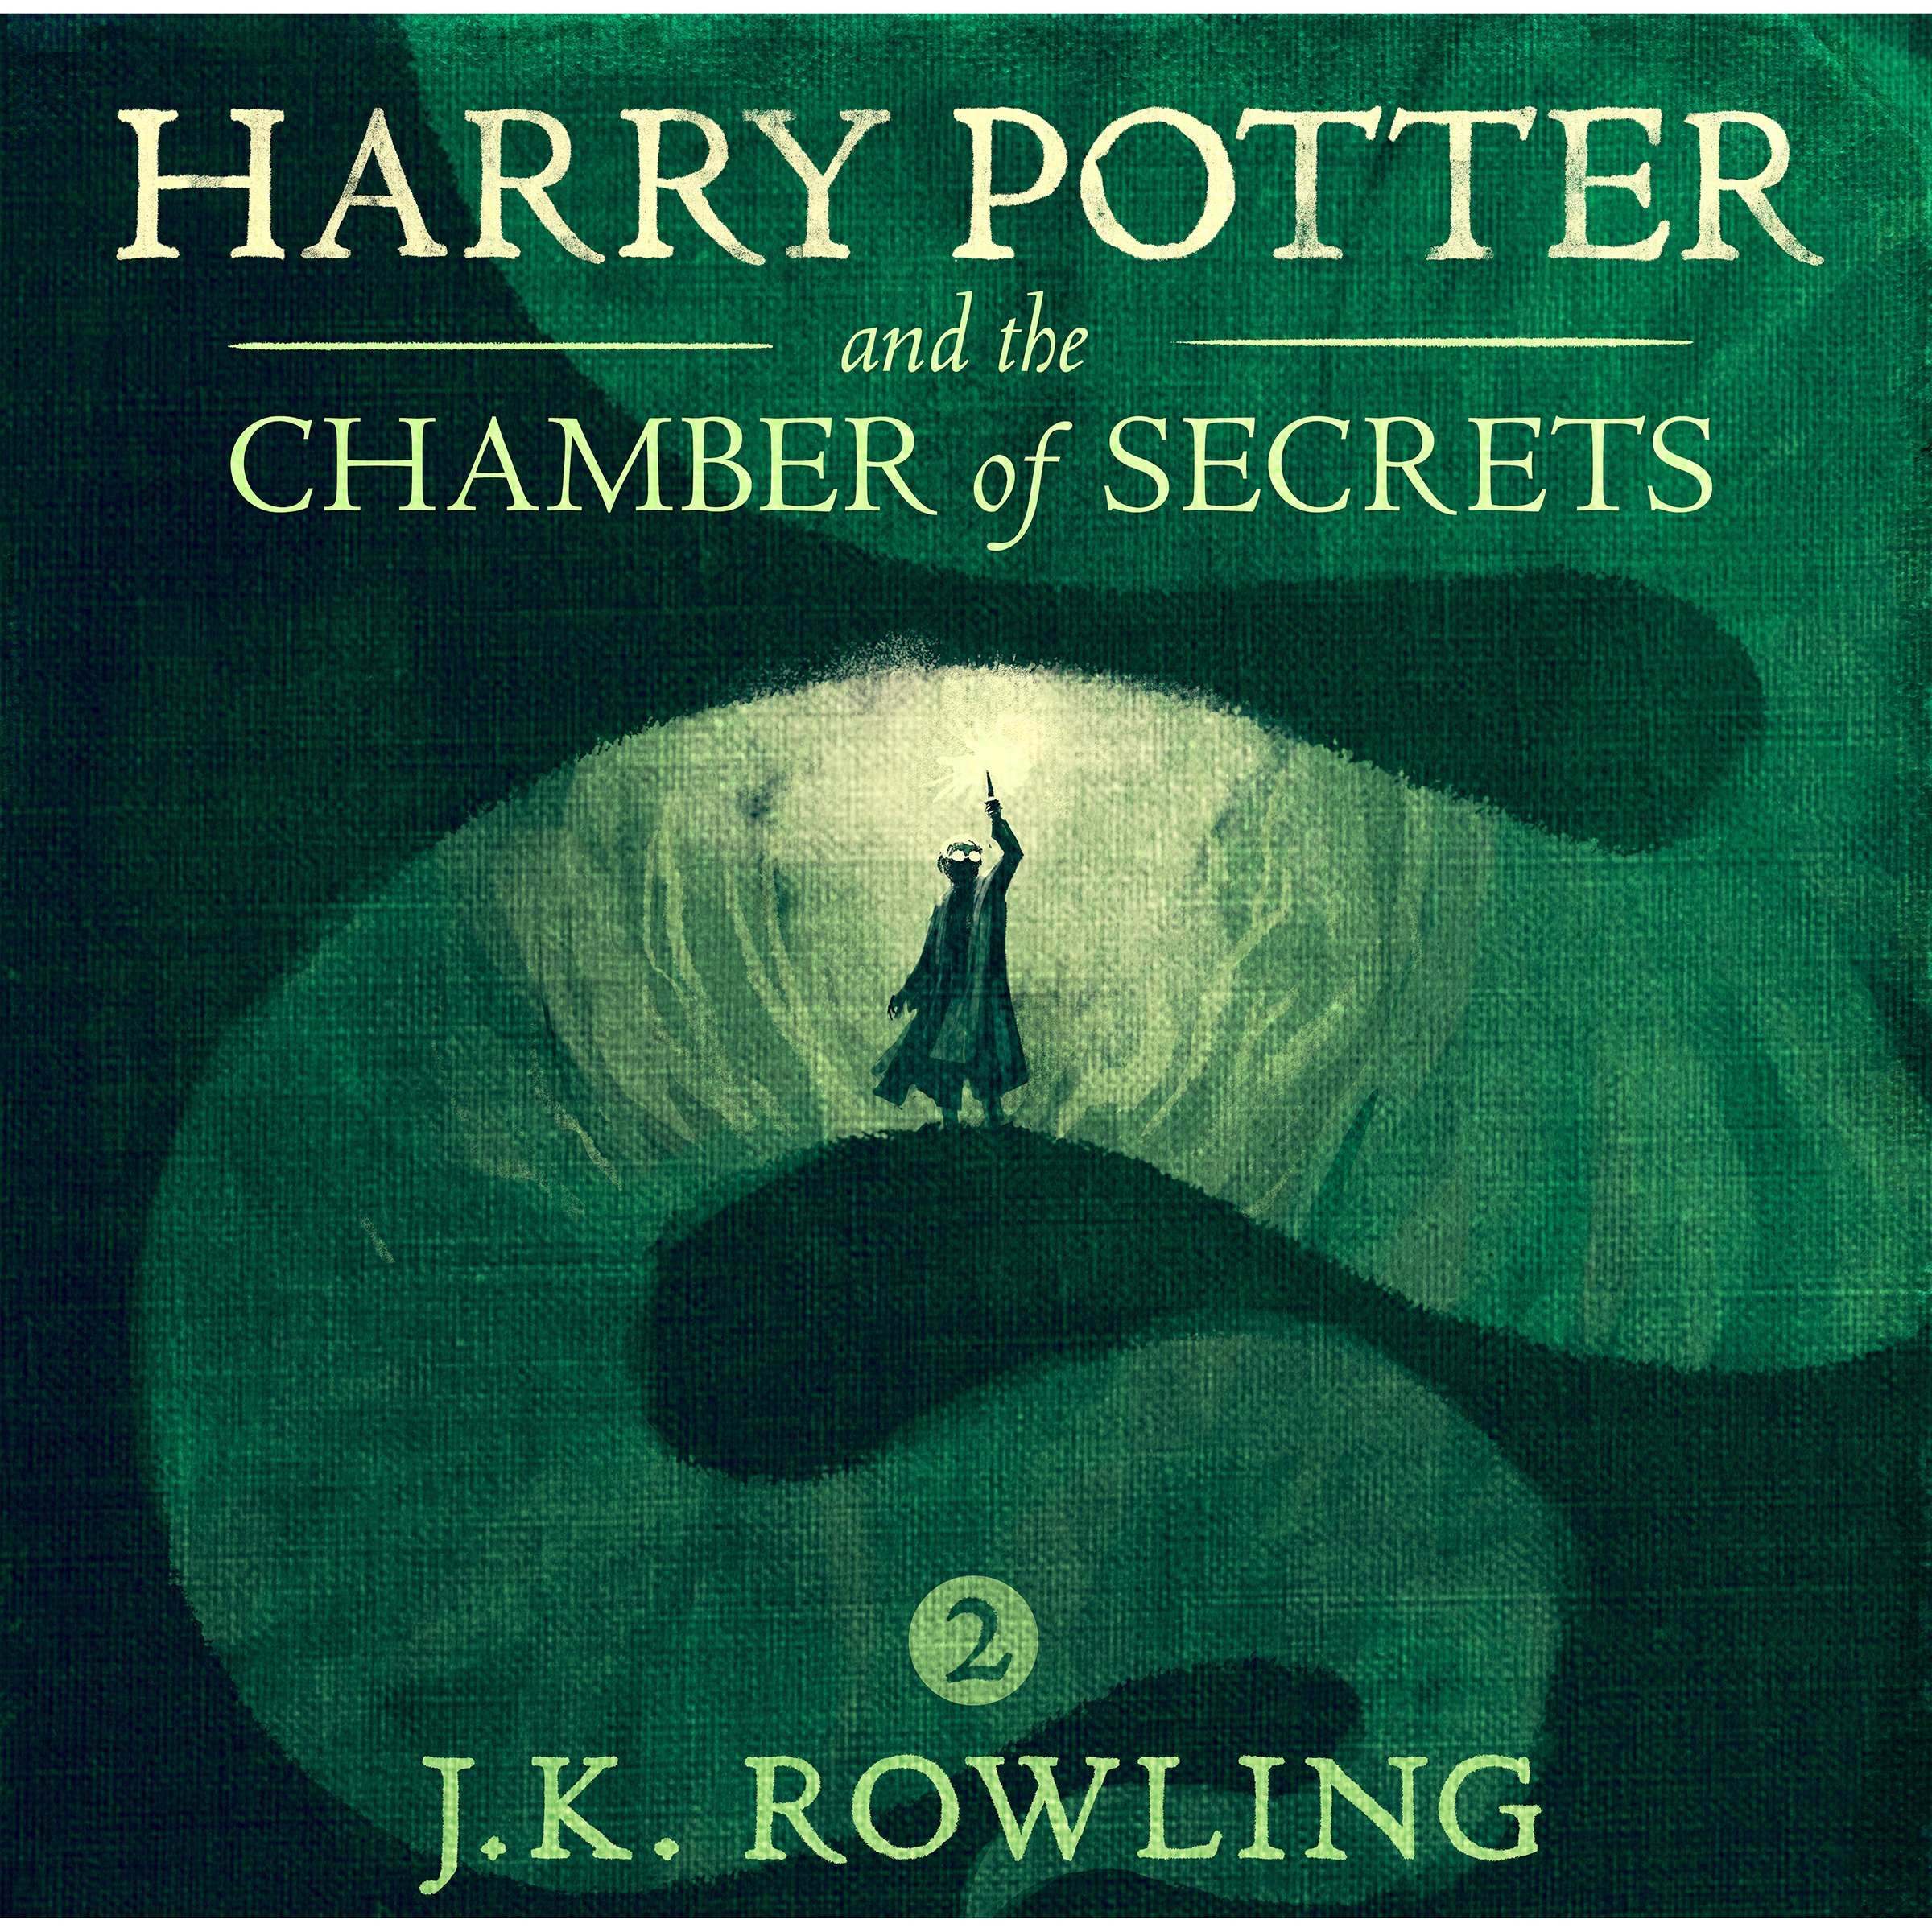 Harry Potter And The Chamber Of Secrets Book 2 Hörbuch Download J K Rowling Stephen Fry Pottermore Publishing Audible Audiobooks